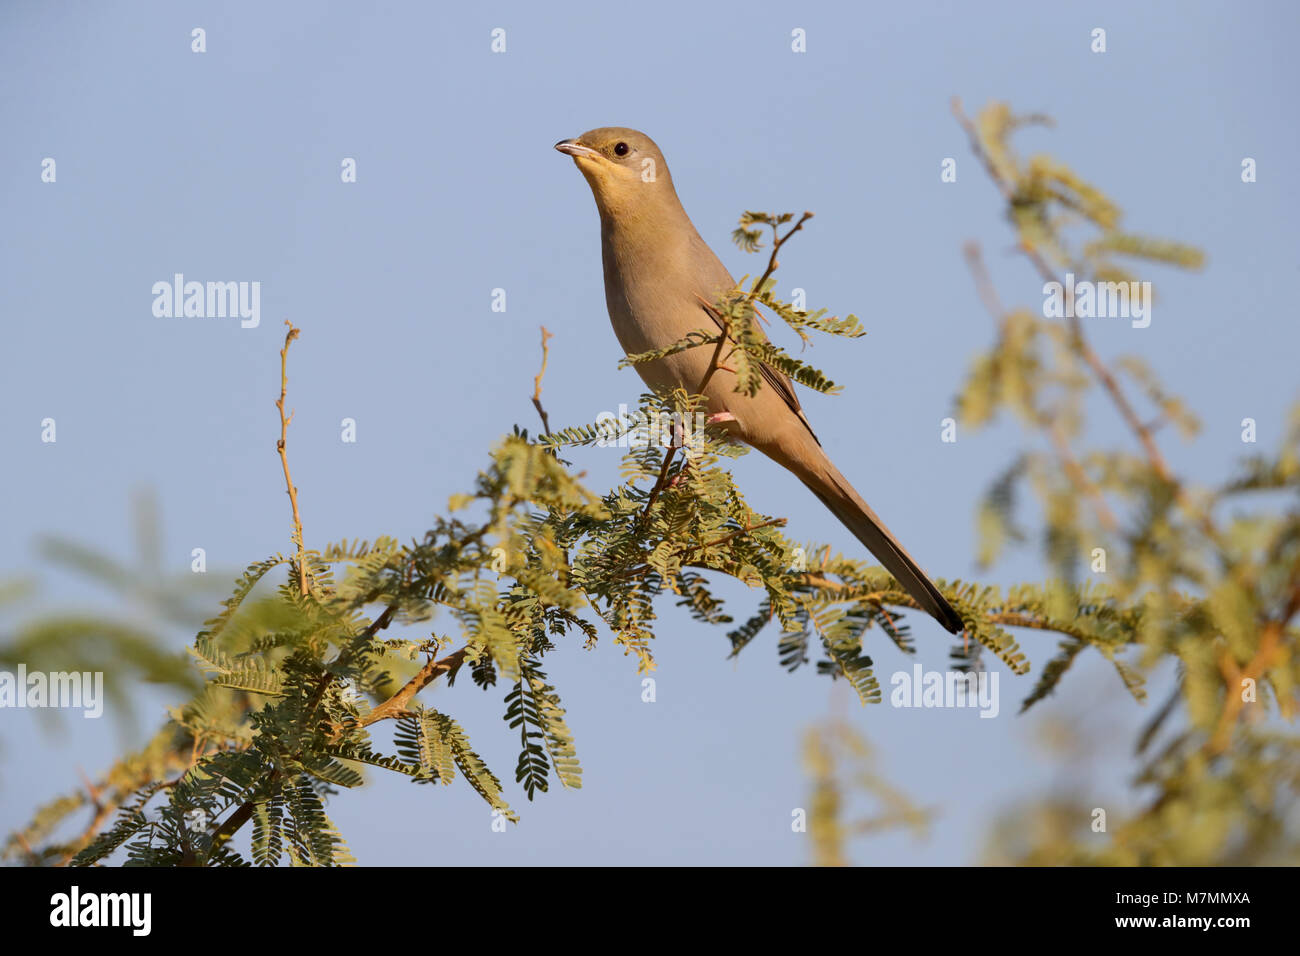 An adult female Grey Hypocolius (Hypocolius ampelinus) perched on a tree in the Kutch region of Gujarat, India - Stock Image